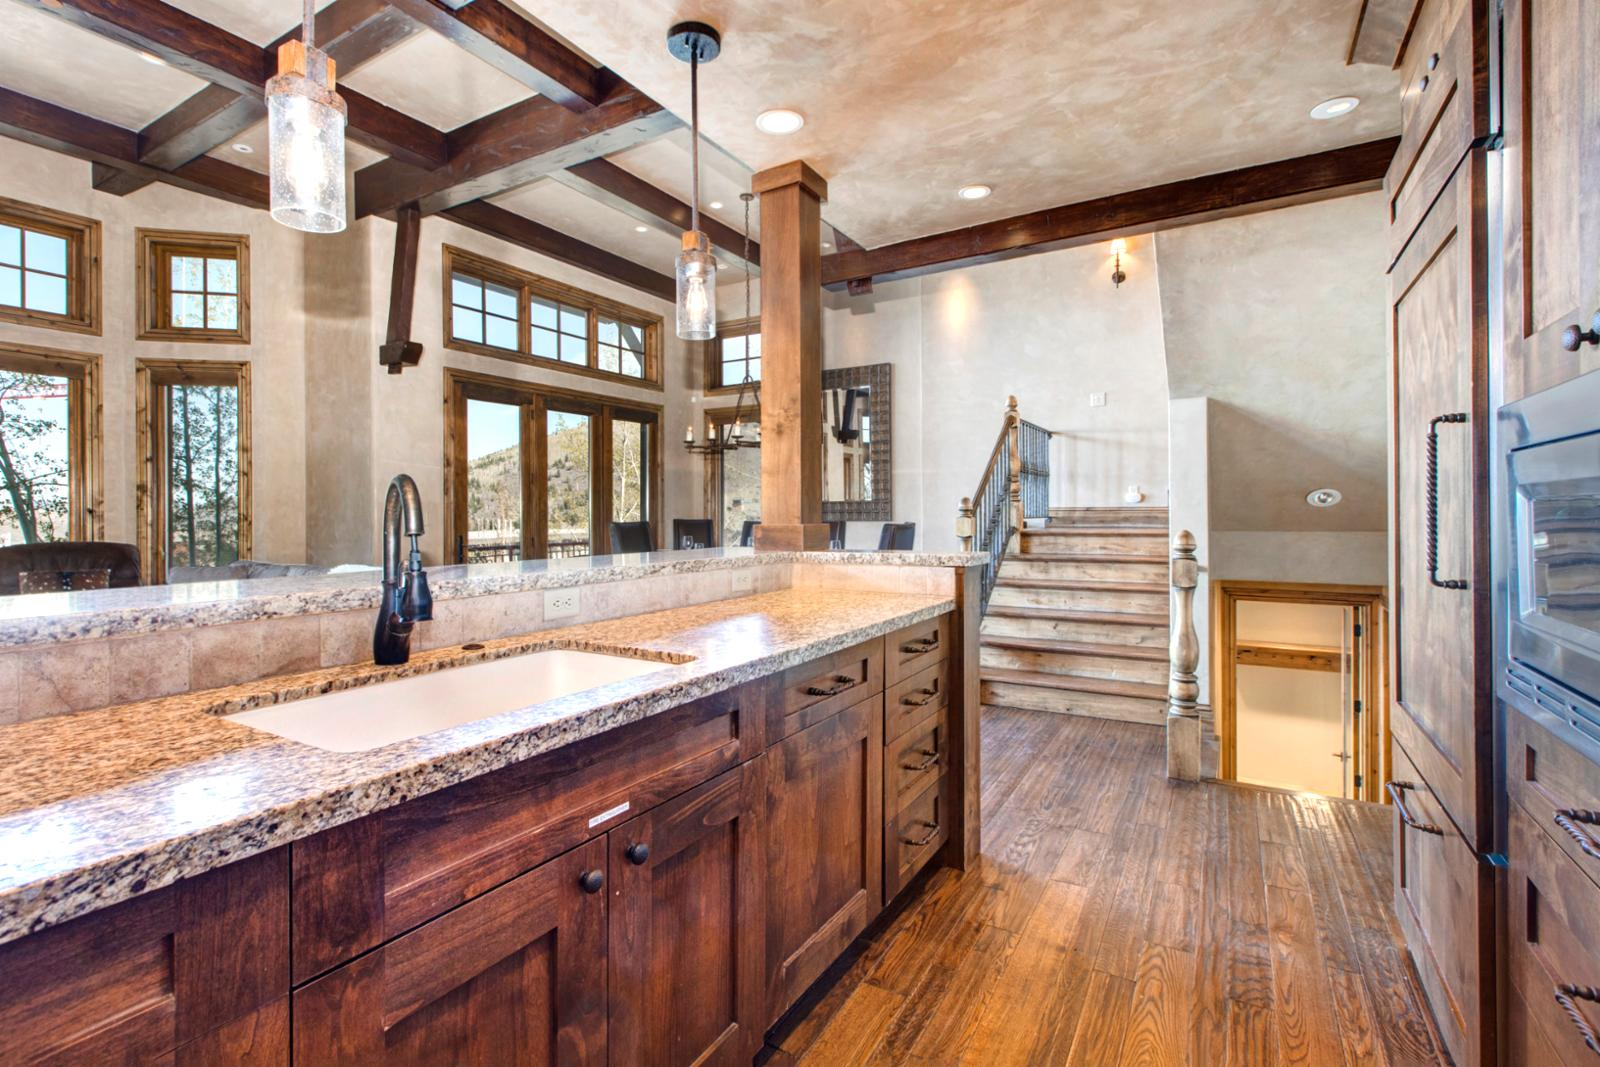 This beautiful kitchen has granite counters and Wolf appliances